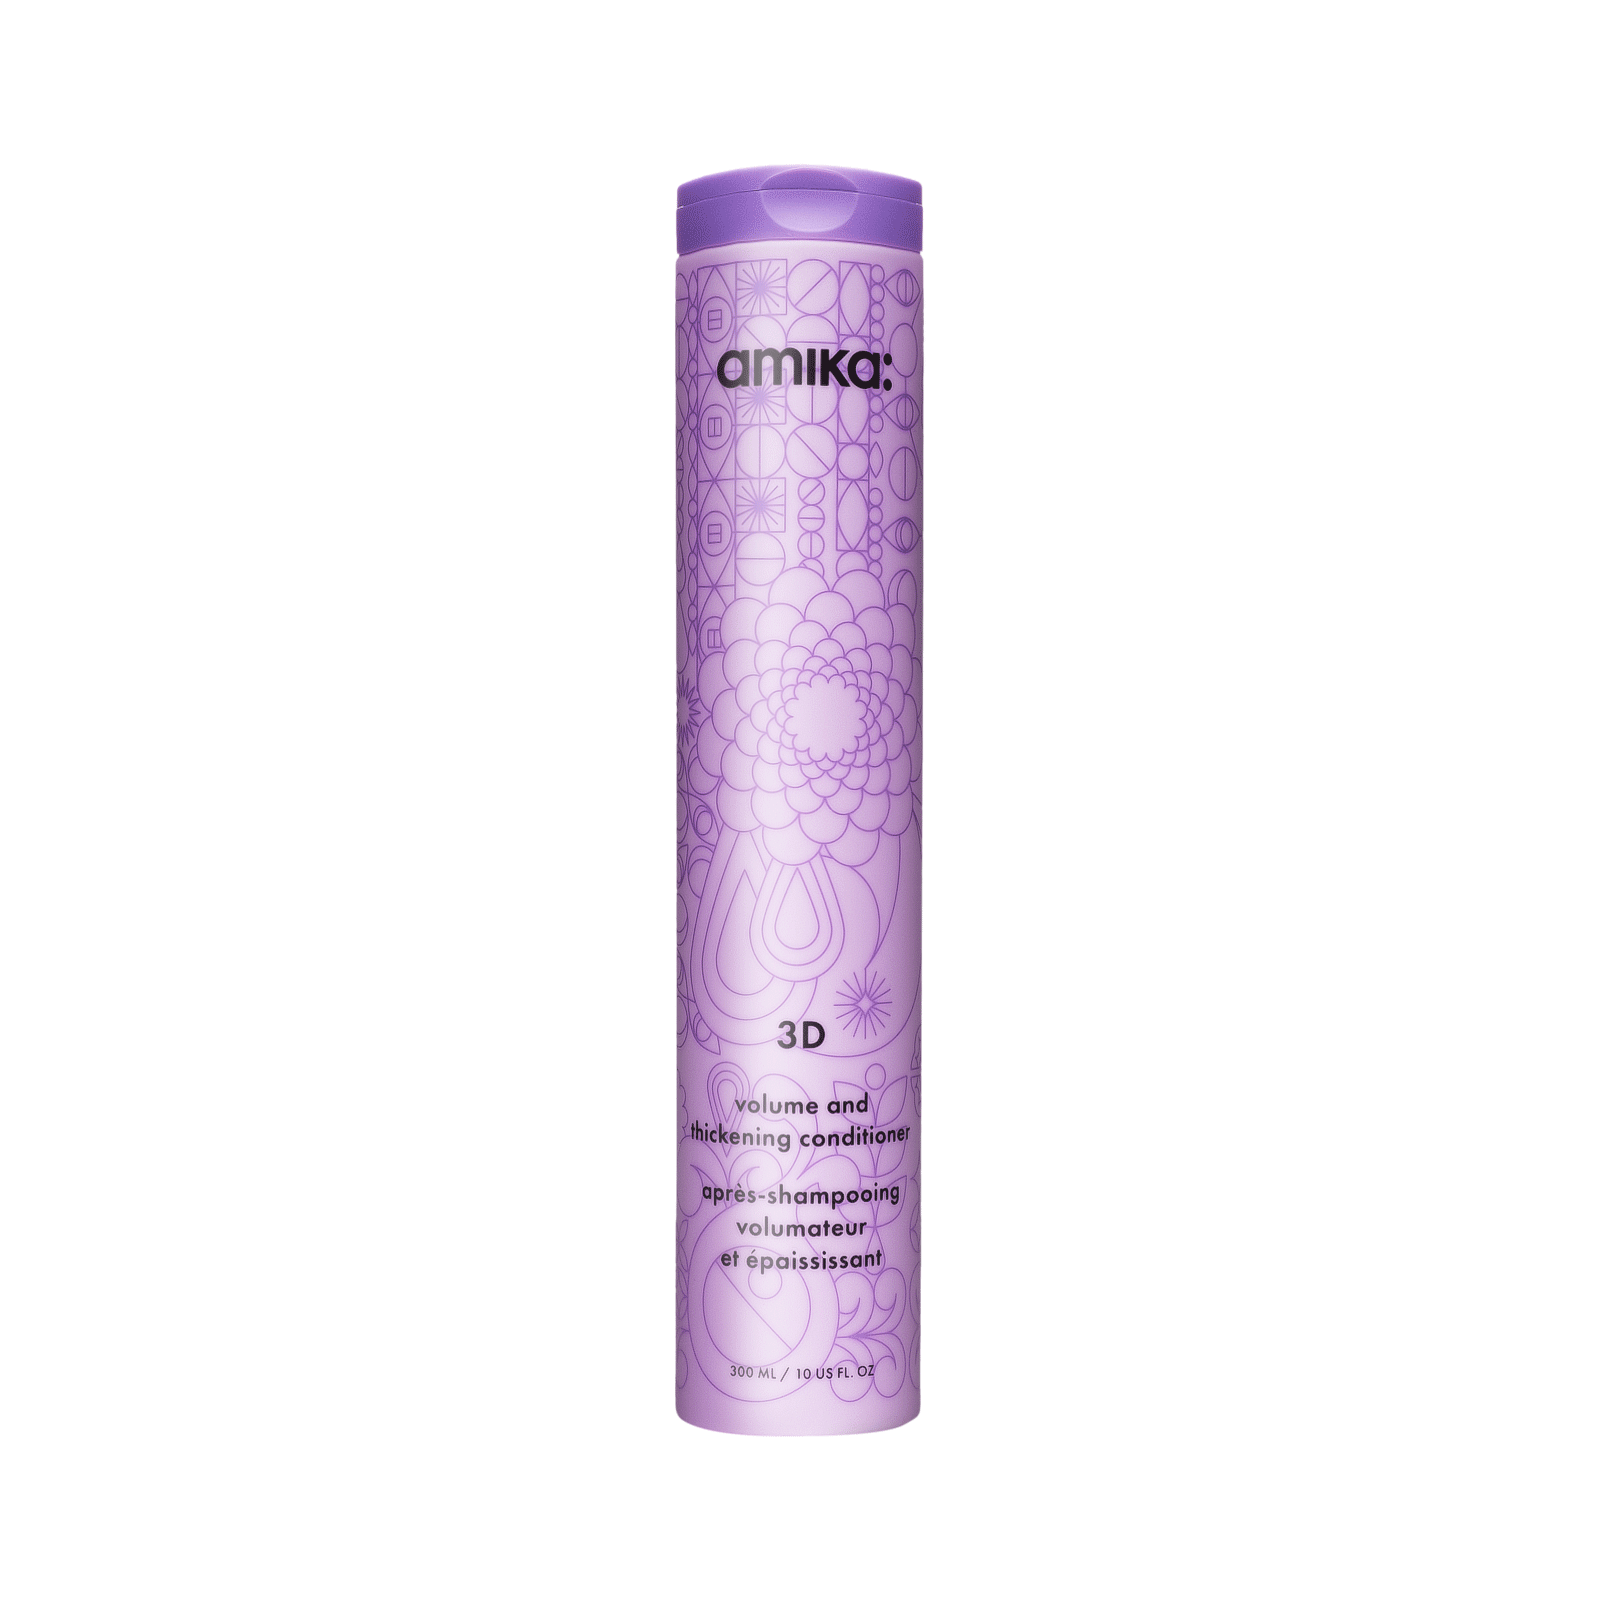 3D Volume & Thickening Conditioner